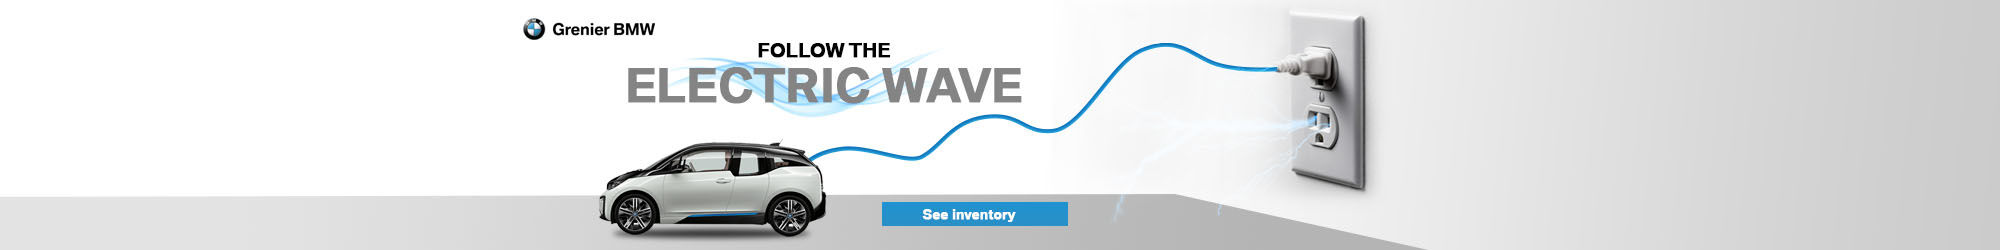 Catch the electric wave